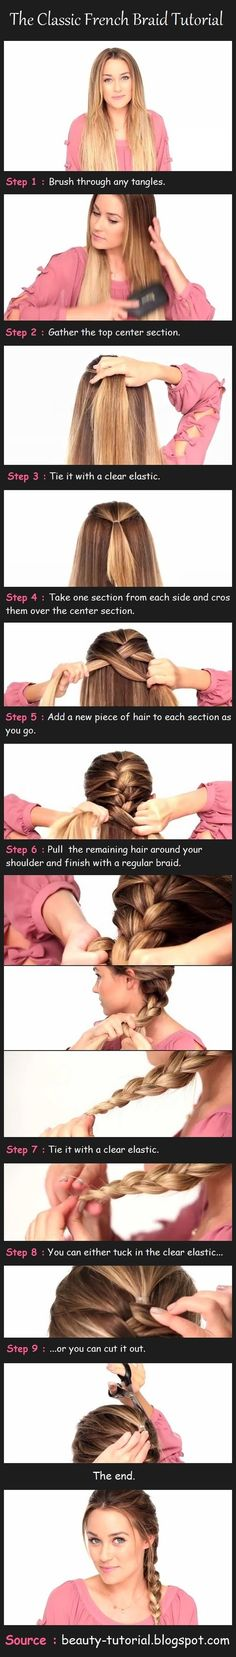 Like the rubberband trick! This makes it easy!